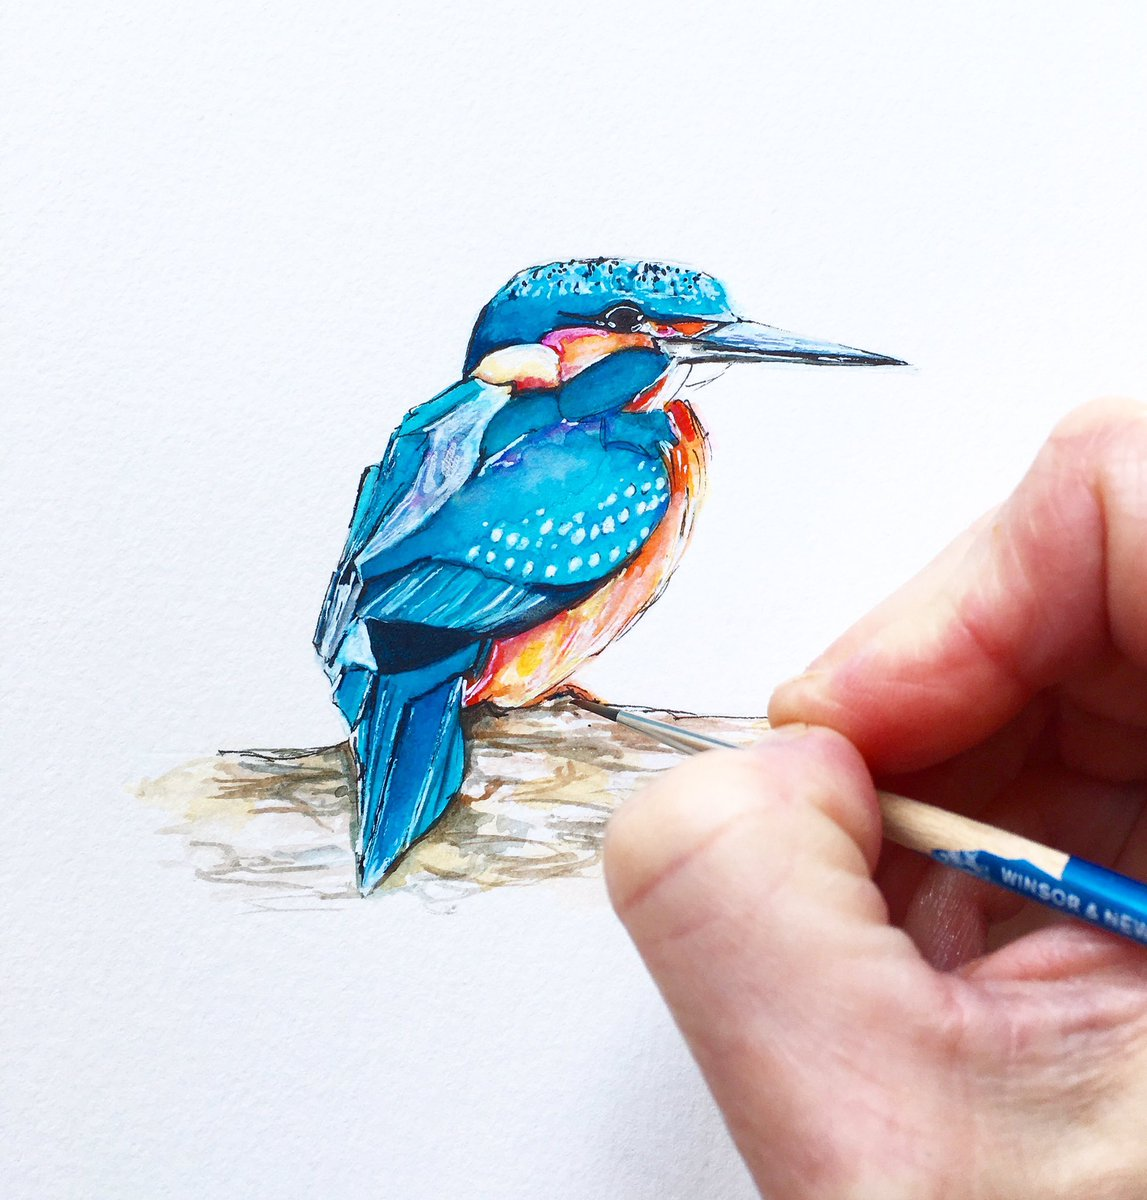 Claire S Wilson On Twitter Kingfisher Watercolour Kingfisher